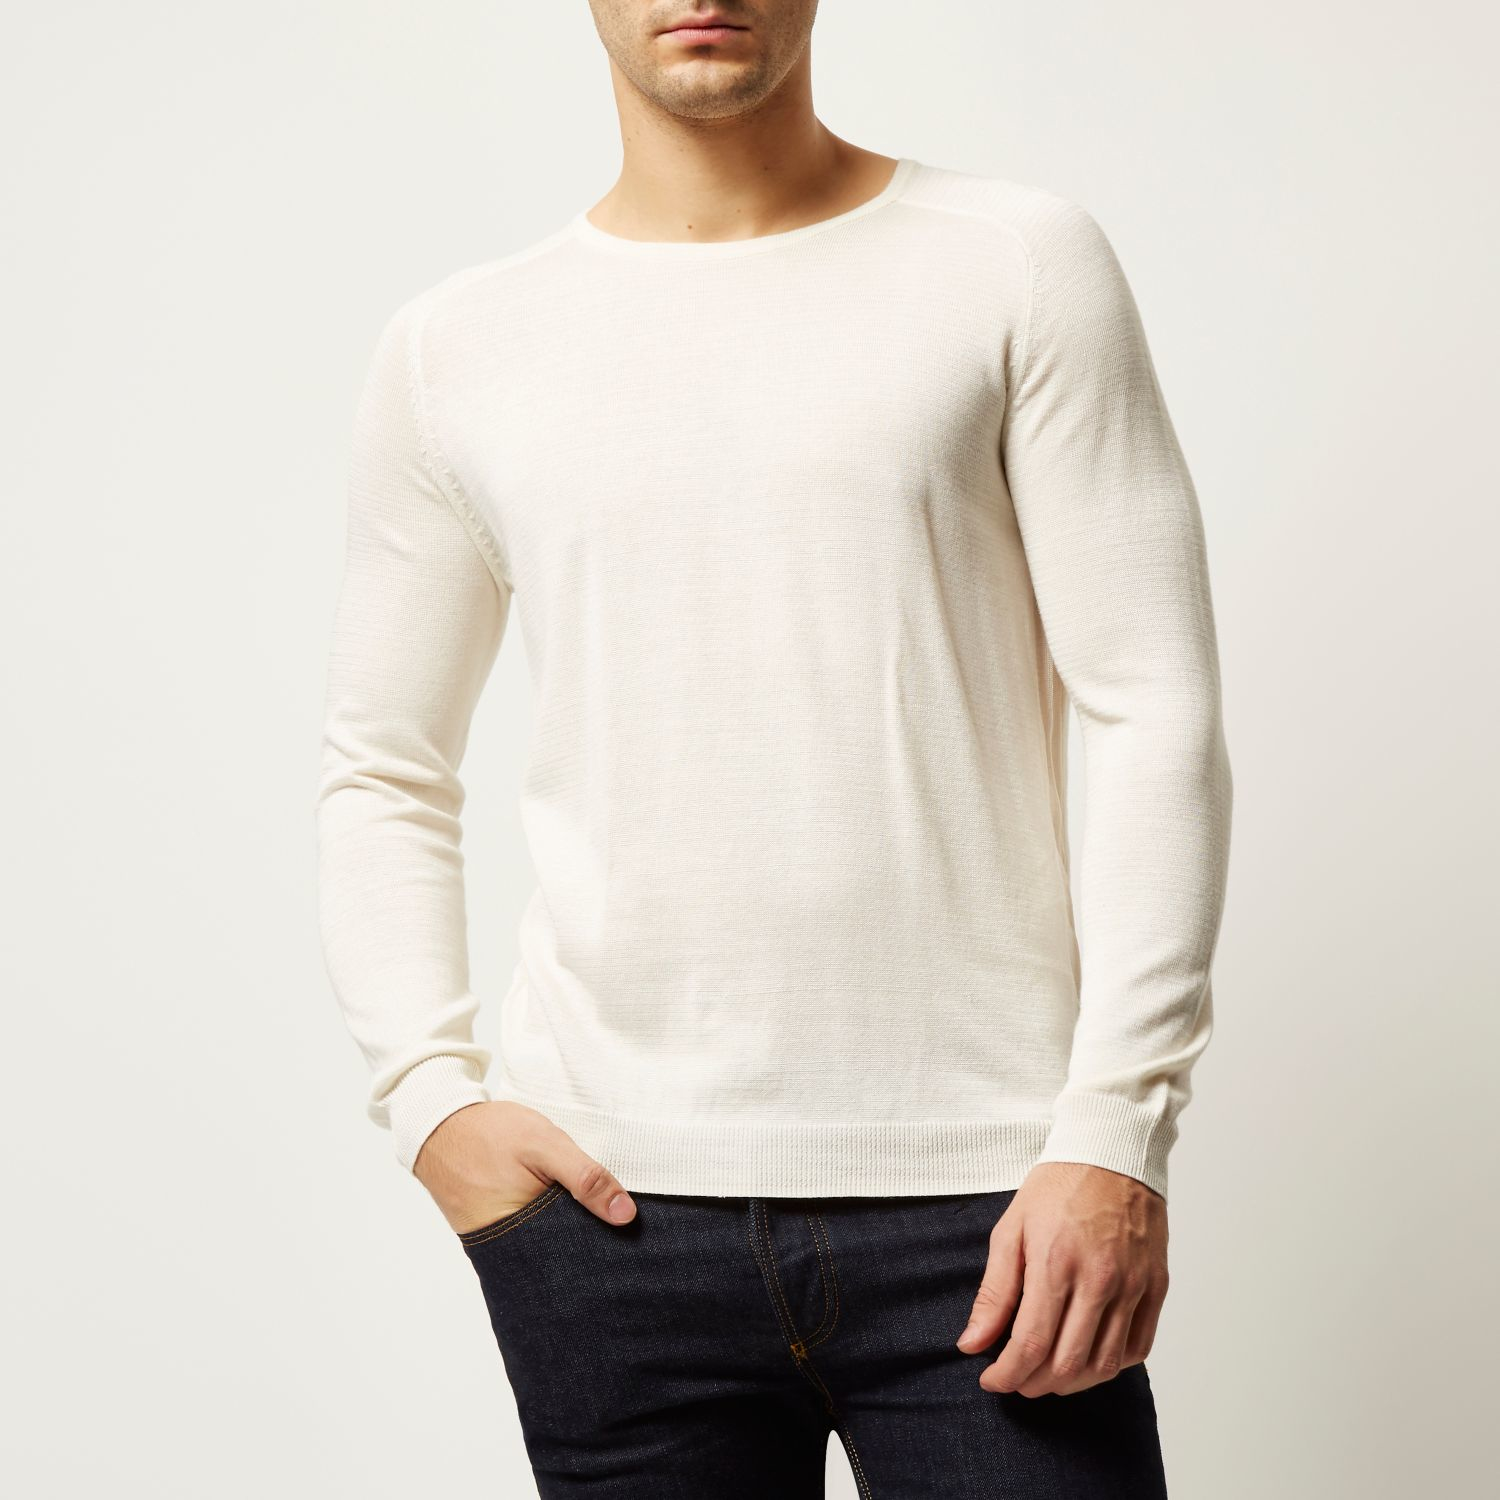 Find great deals on eBay for crew neck sweater. Shop with confidence.